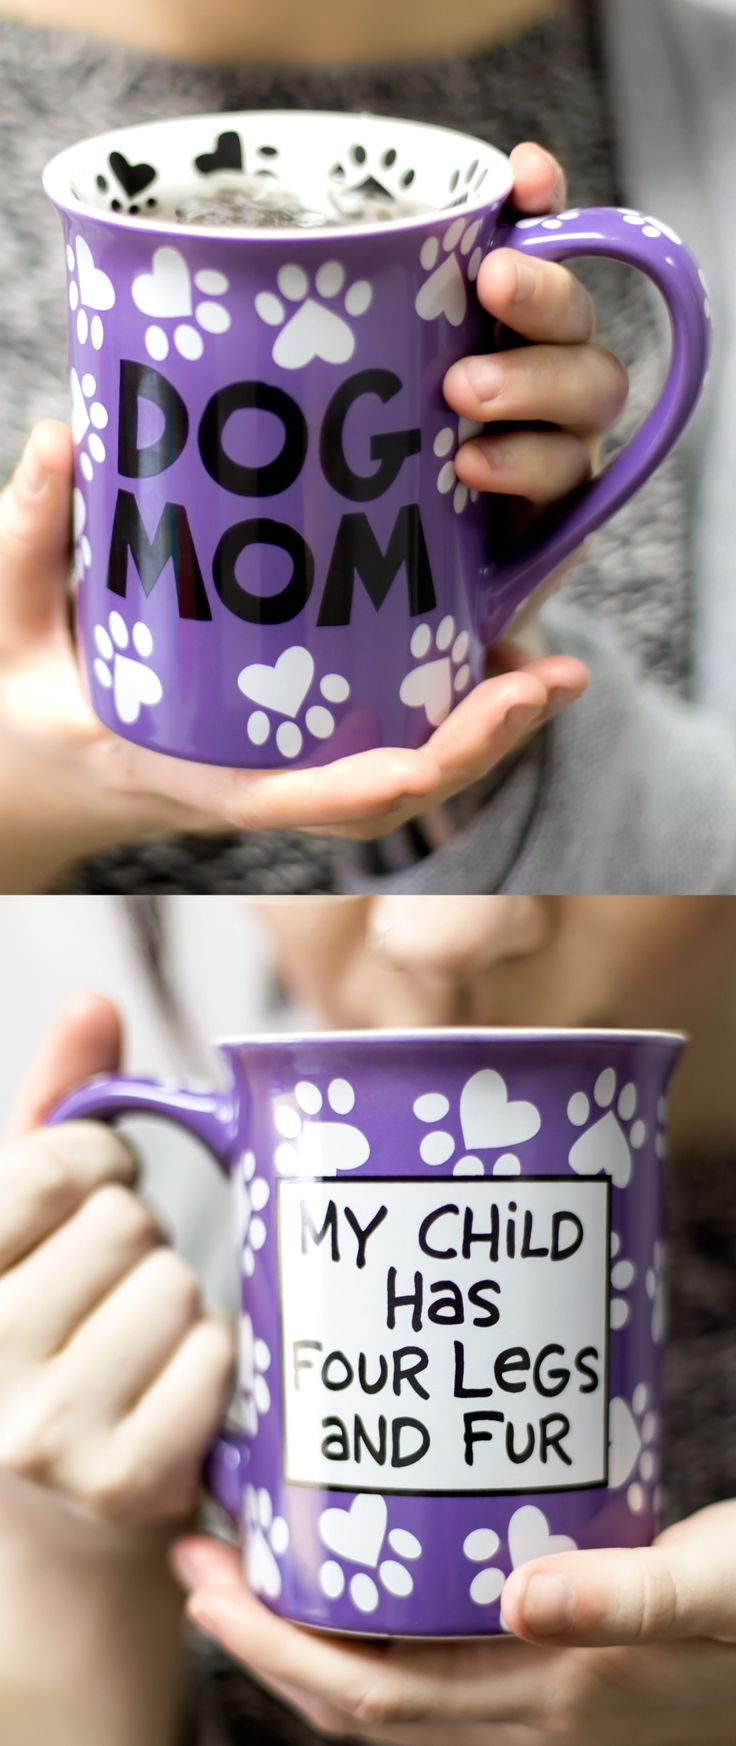 Designed by New York potter Lorrie Veasey, our Dog Mom Mug is a must-have for the proud doggie mama in all of us.